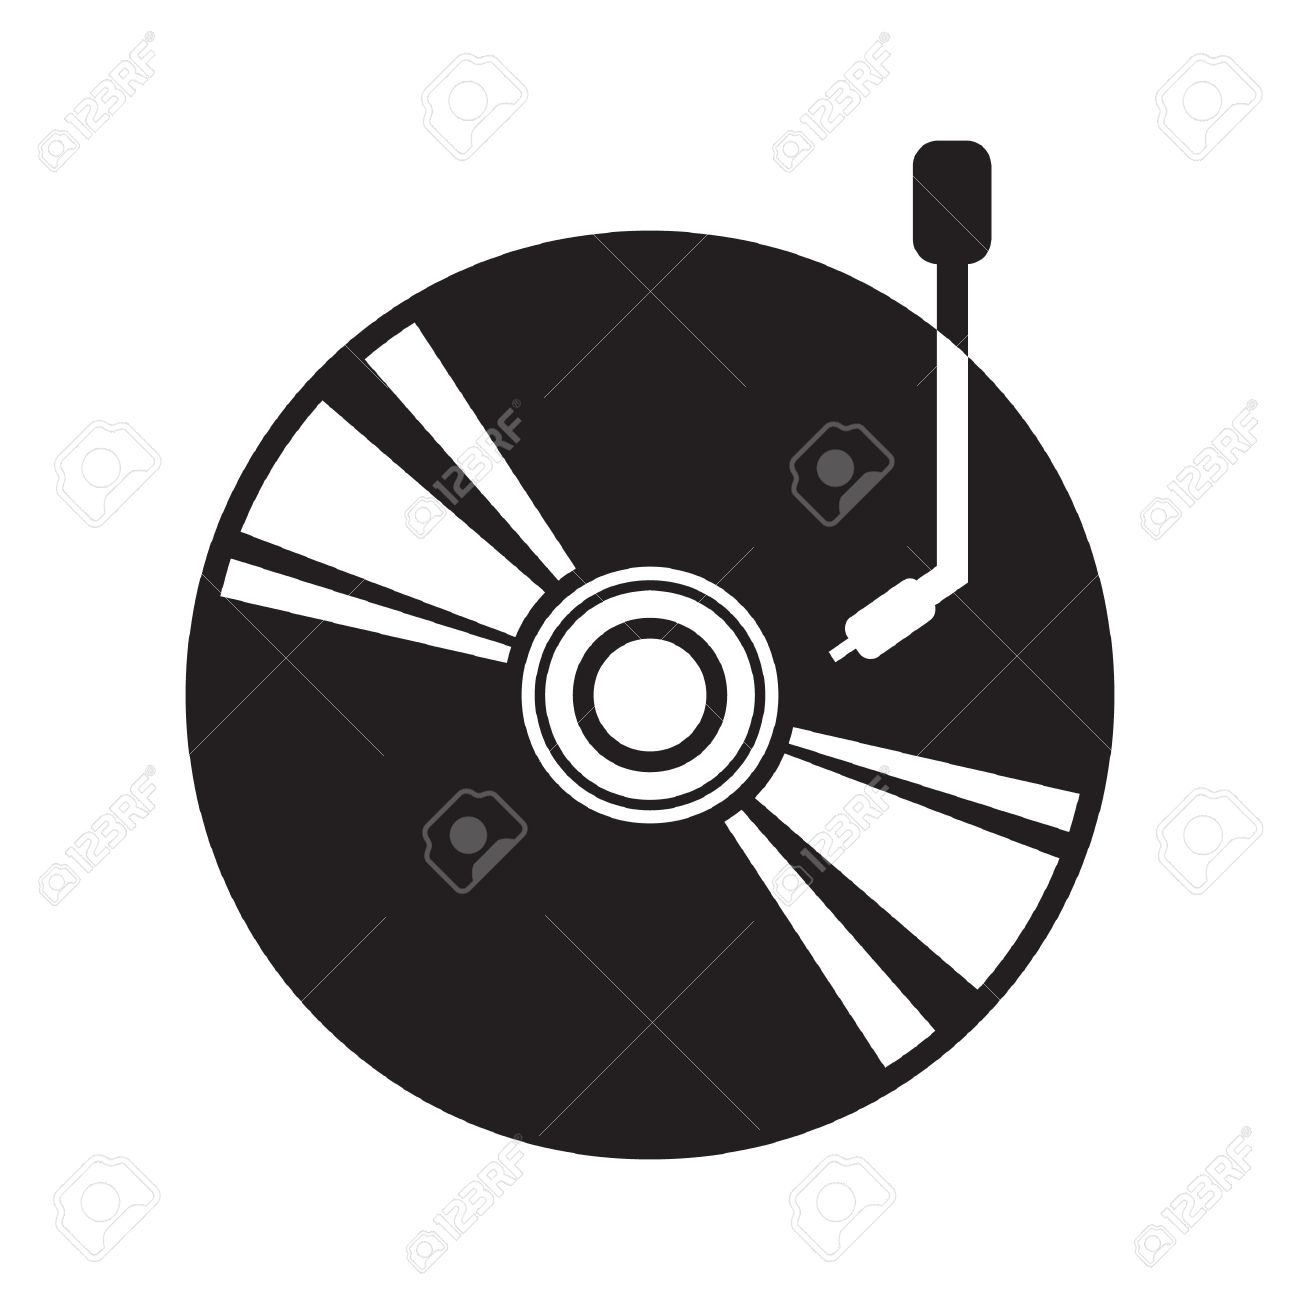 dj turntable royalty free cliparts vectors and stock illustration rh 123rf com DJ Turntable Art DJ Turntable Art